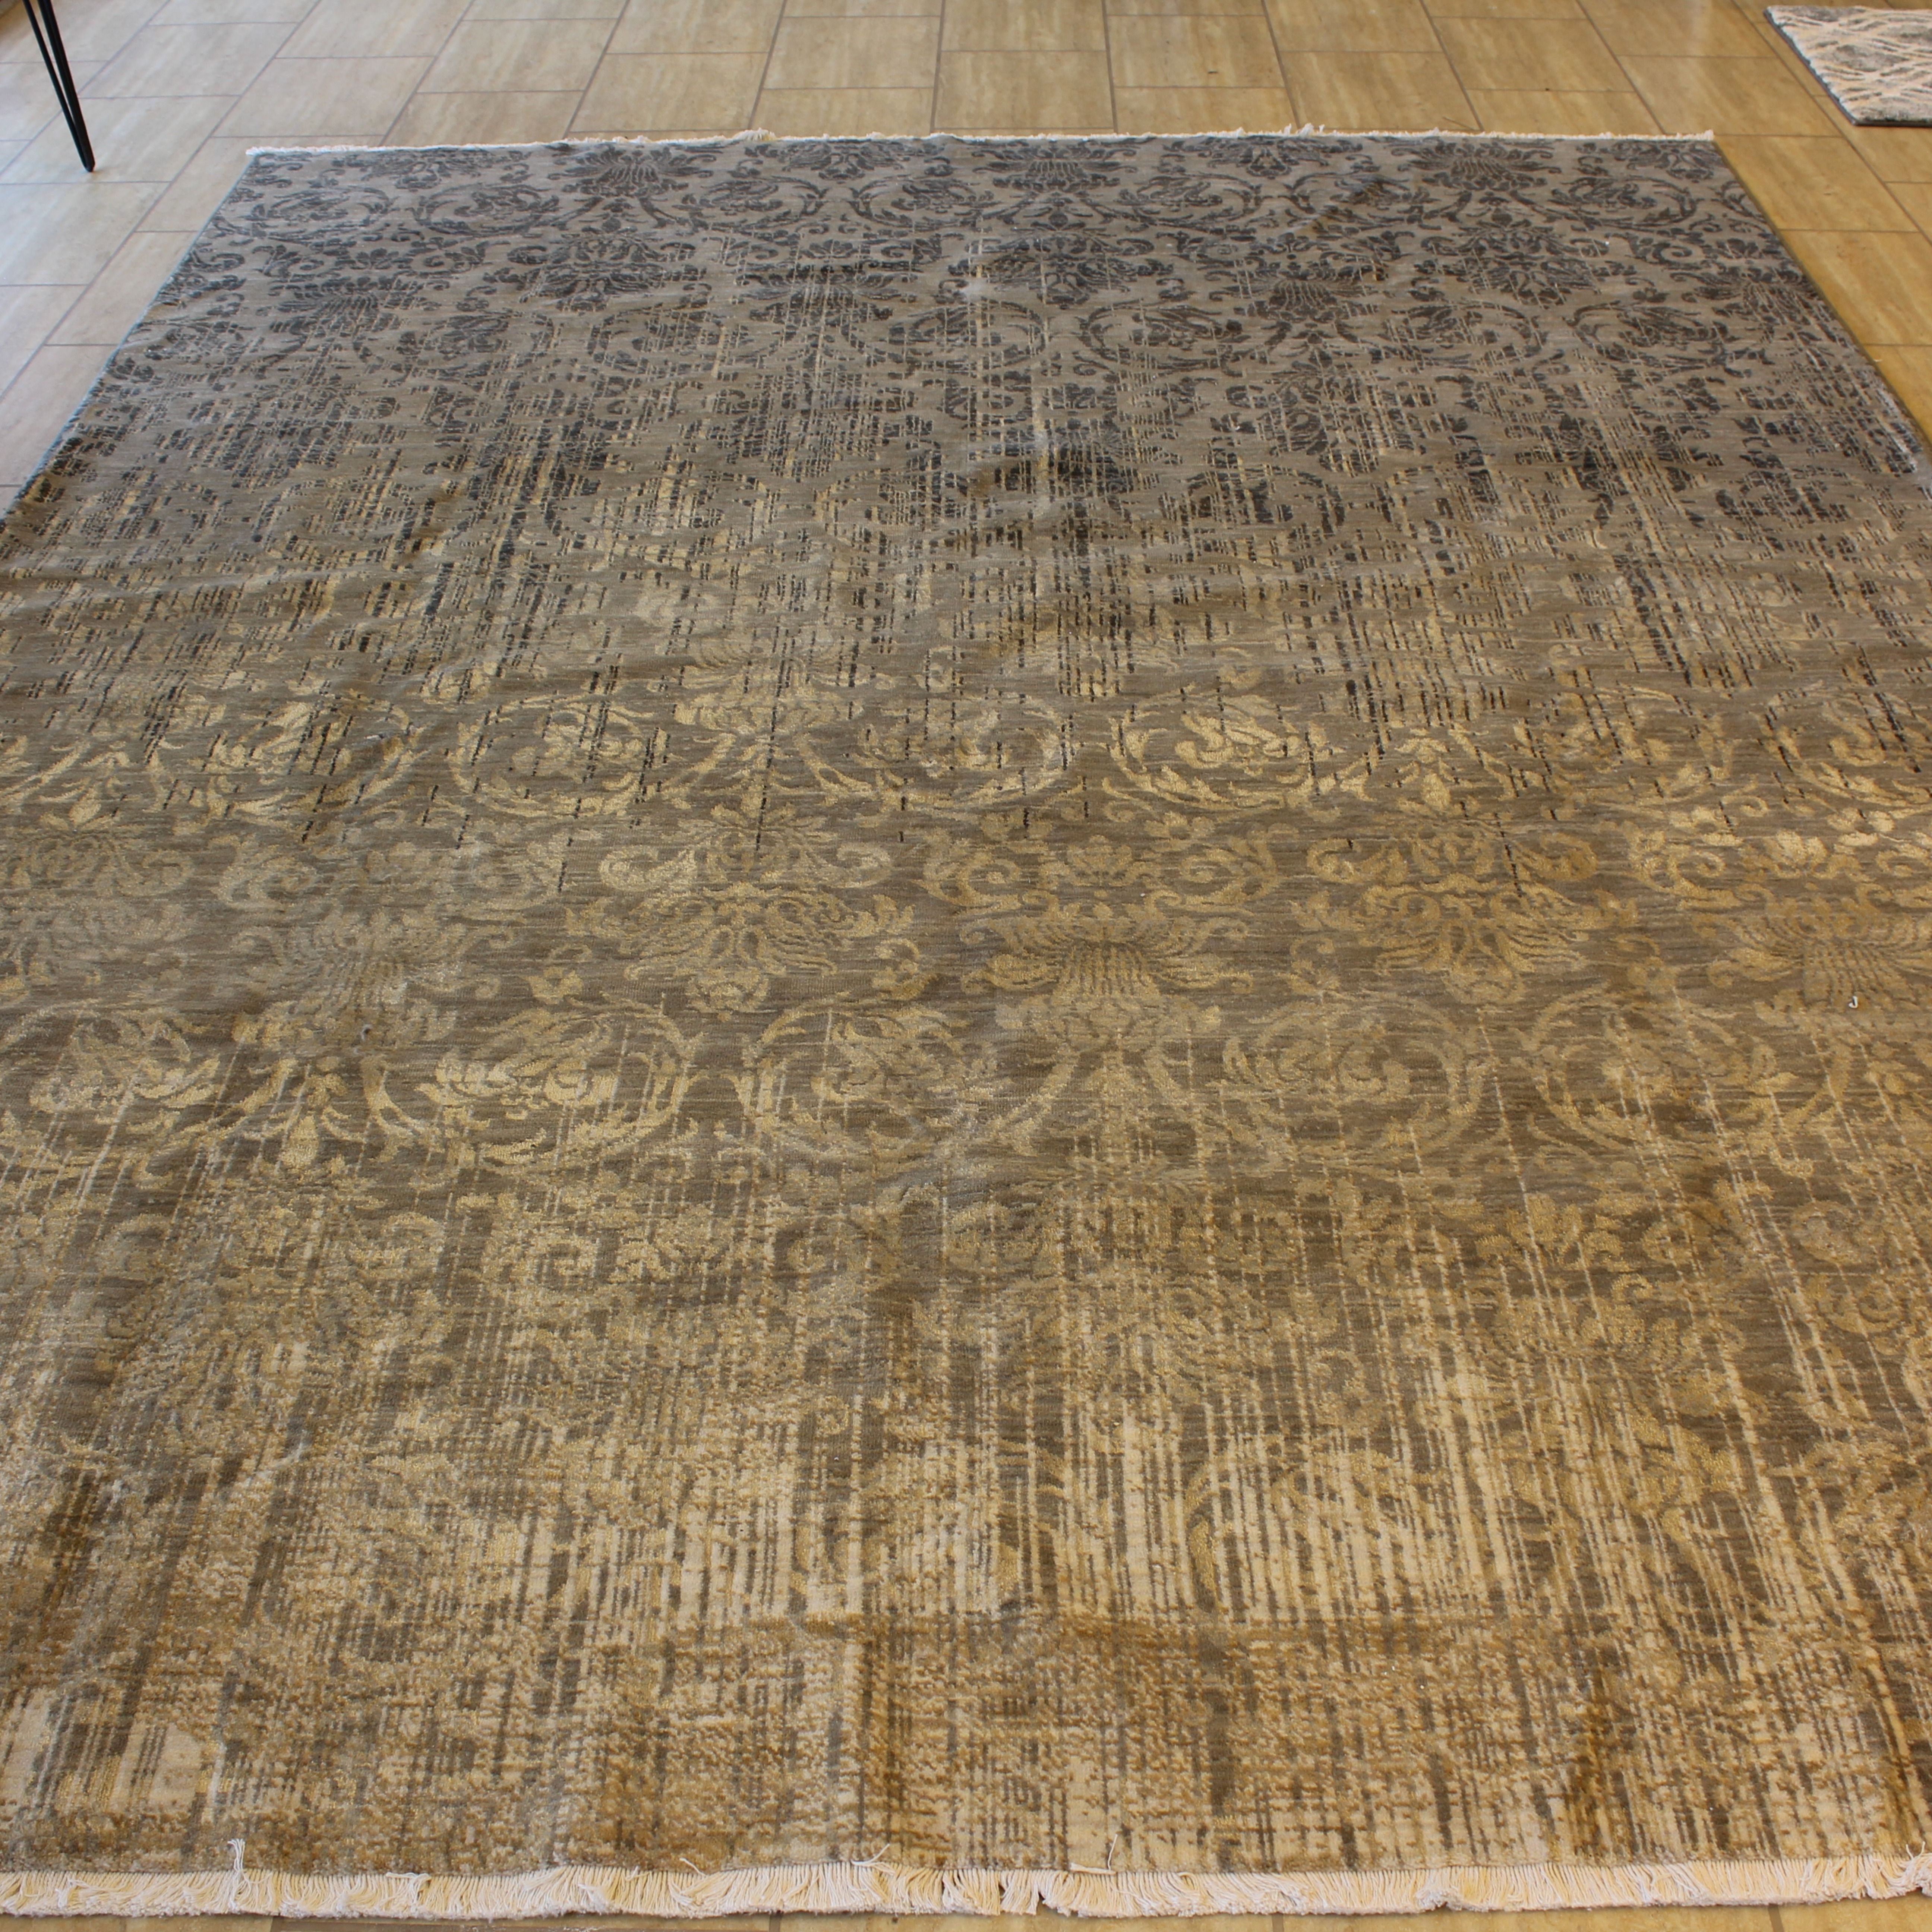 A Neutral Rug Like This Can Work In